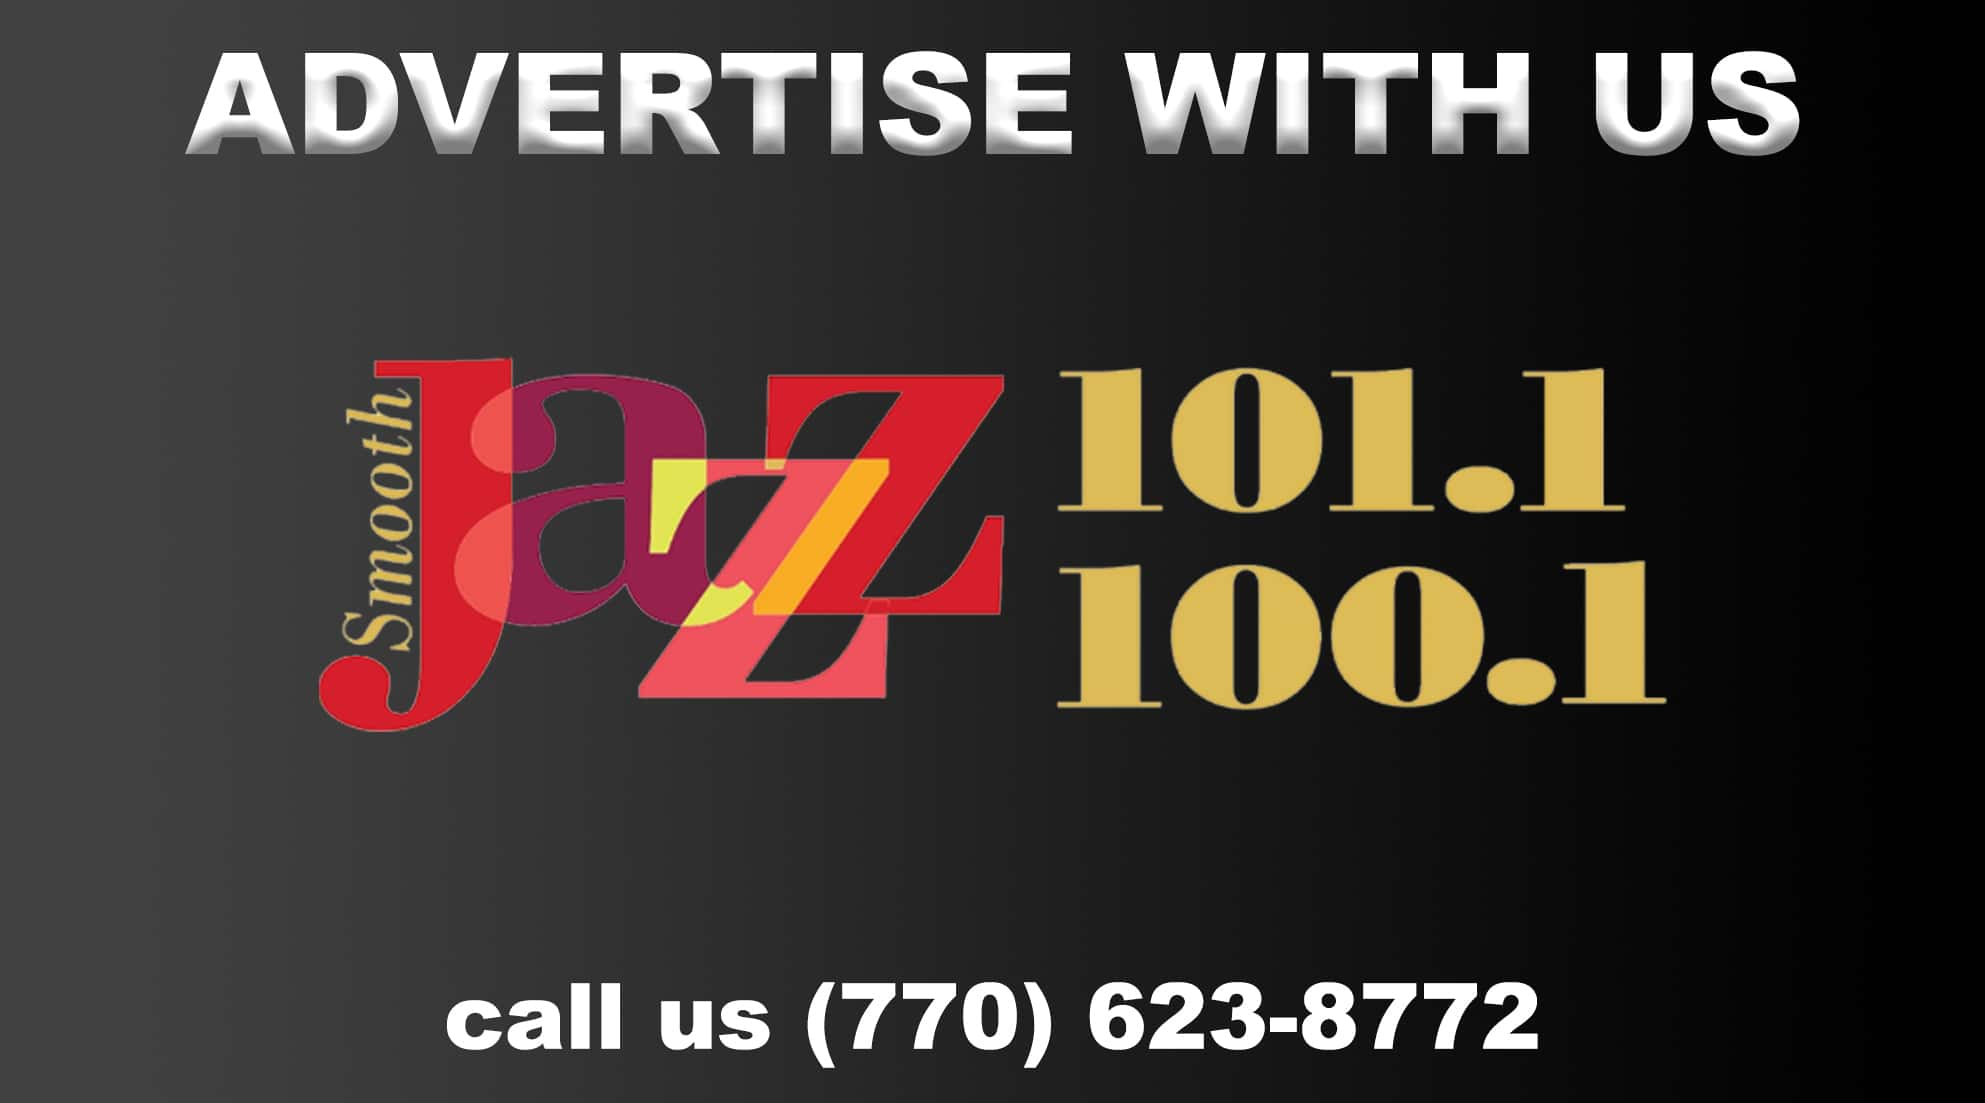 Advertise-with-us2